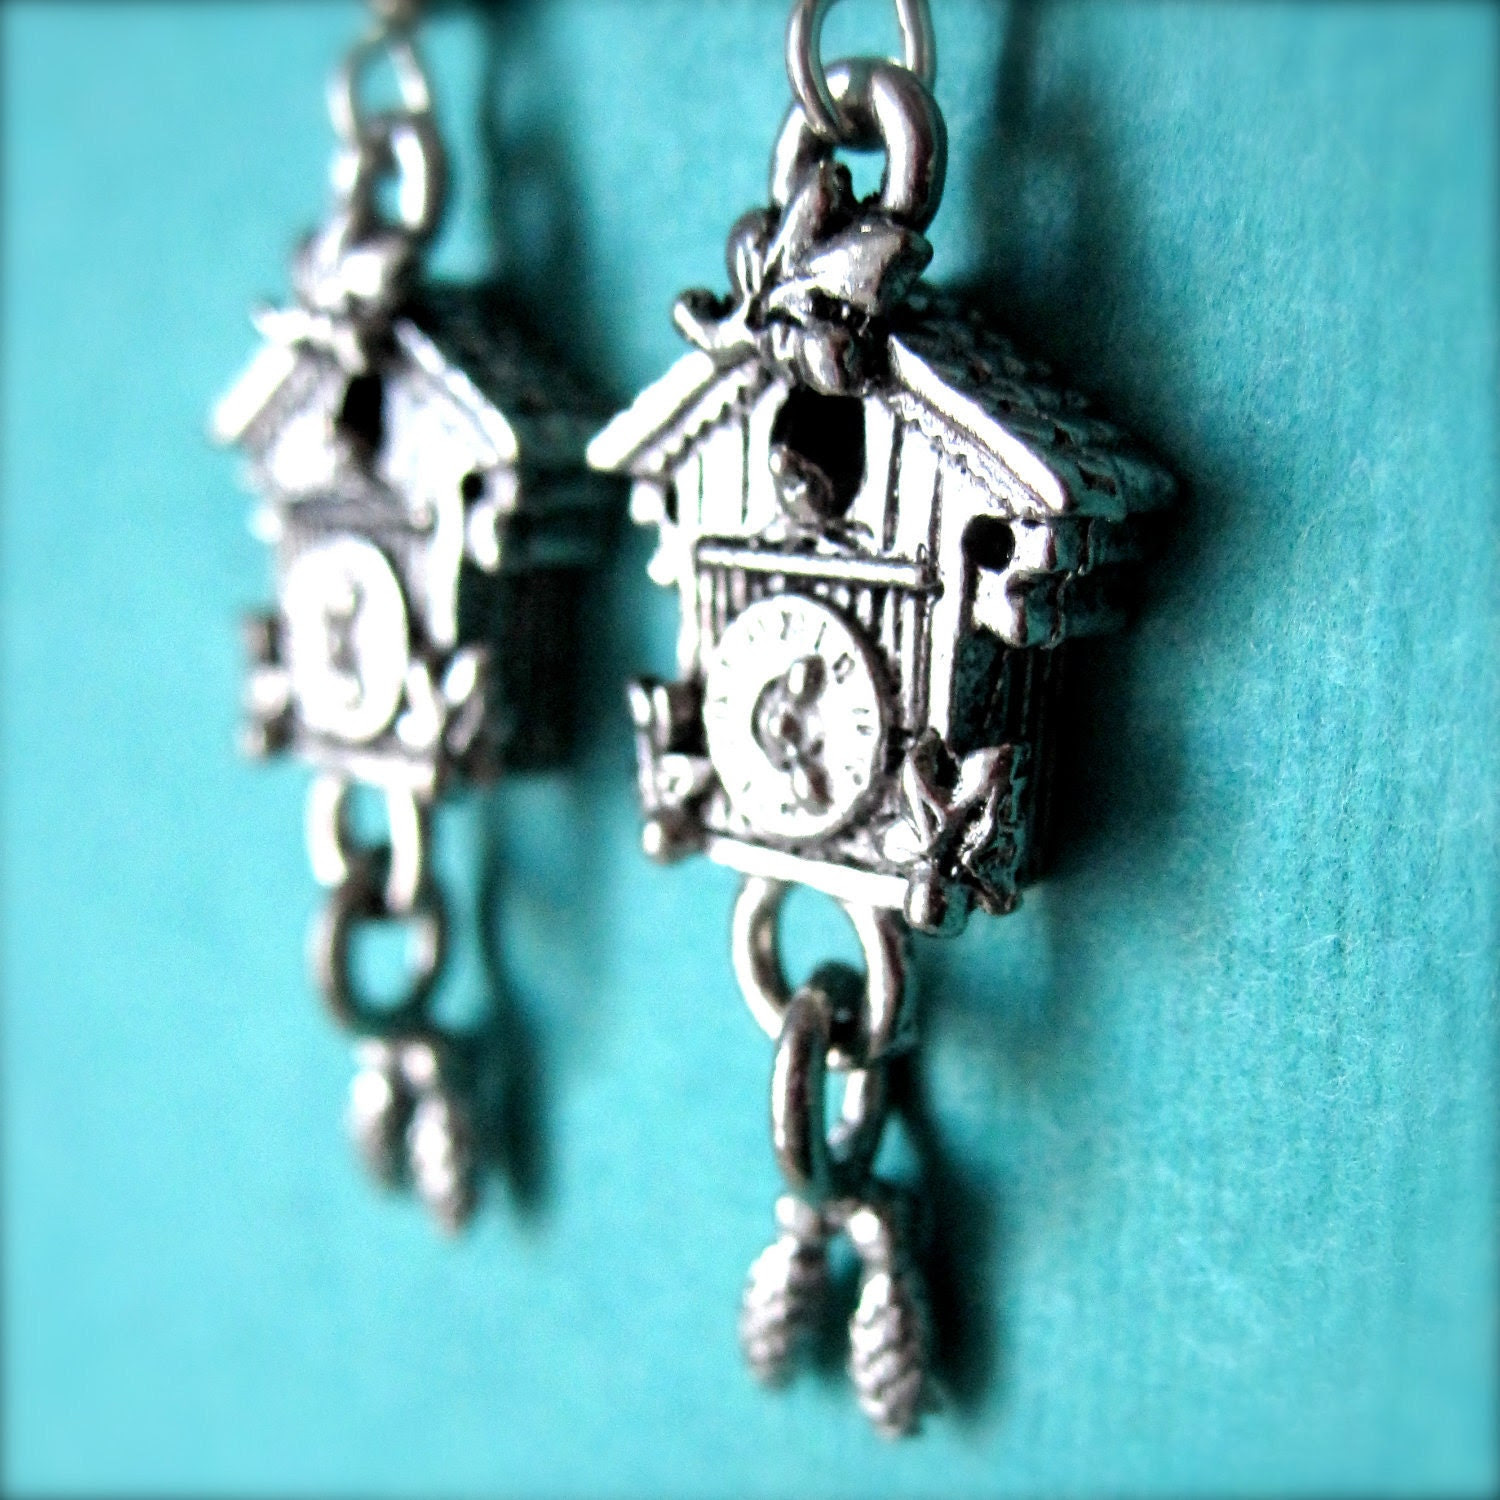 Cuckoo Clock Earrings - Clock Earrings - Silver Dangle Earrings - Whimsical Jewelry